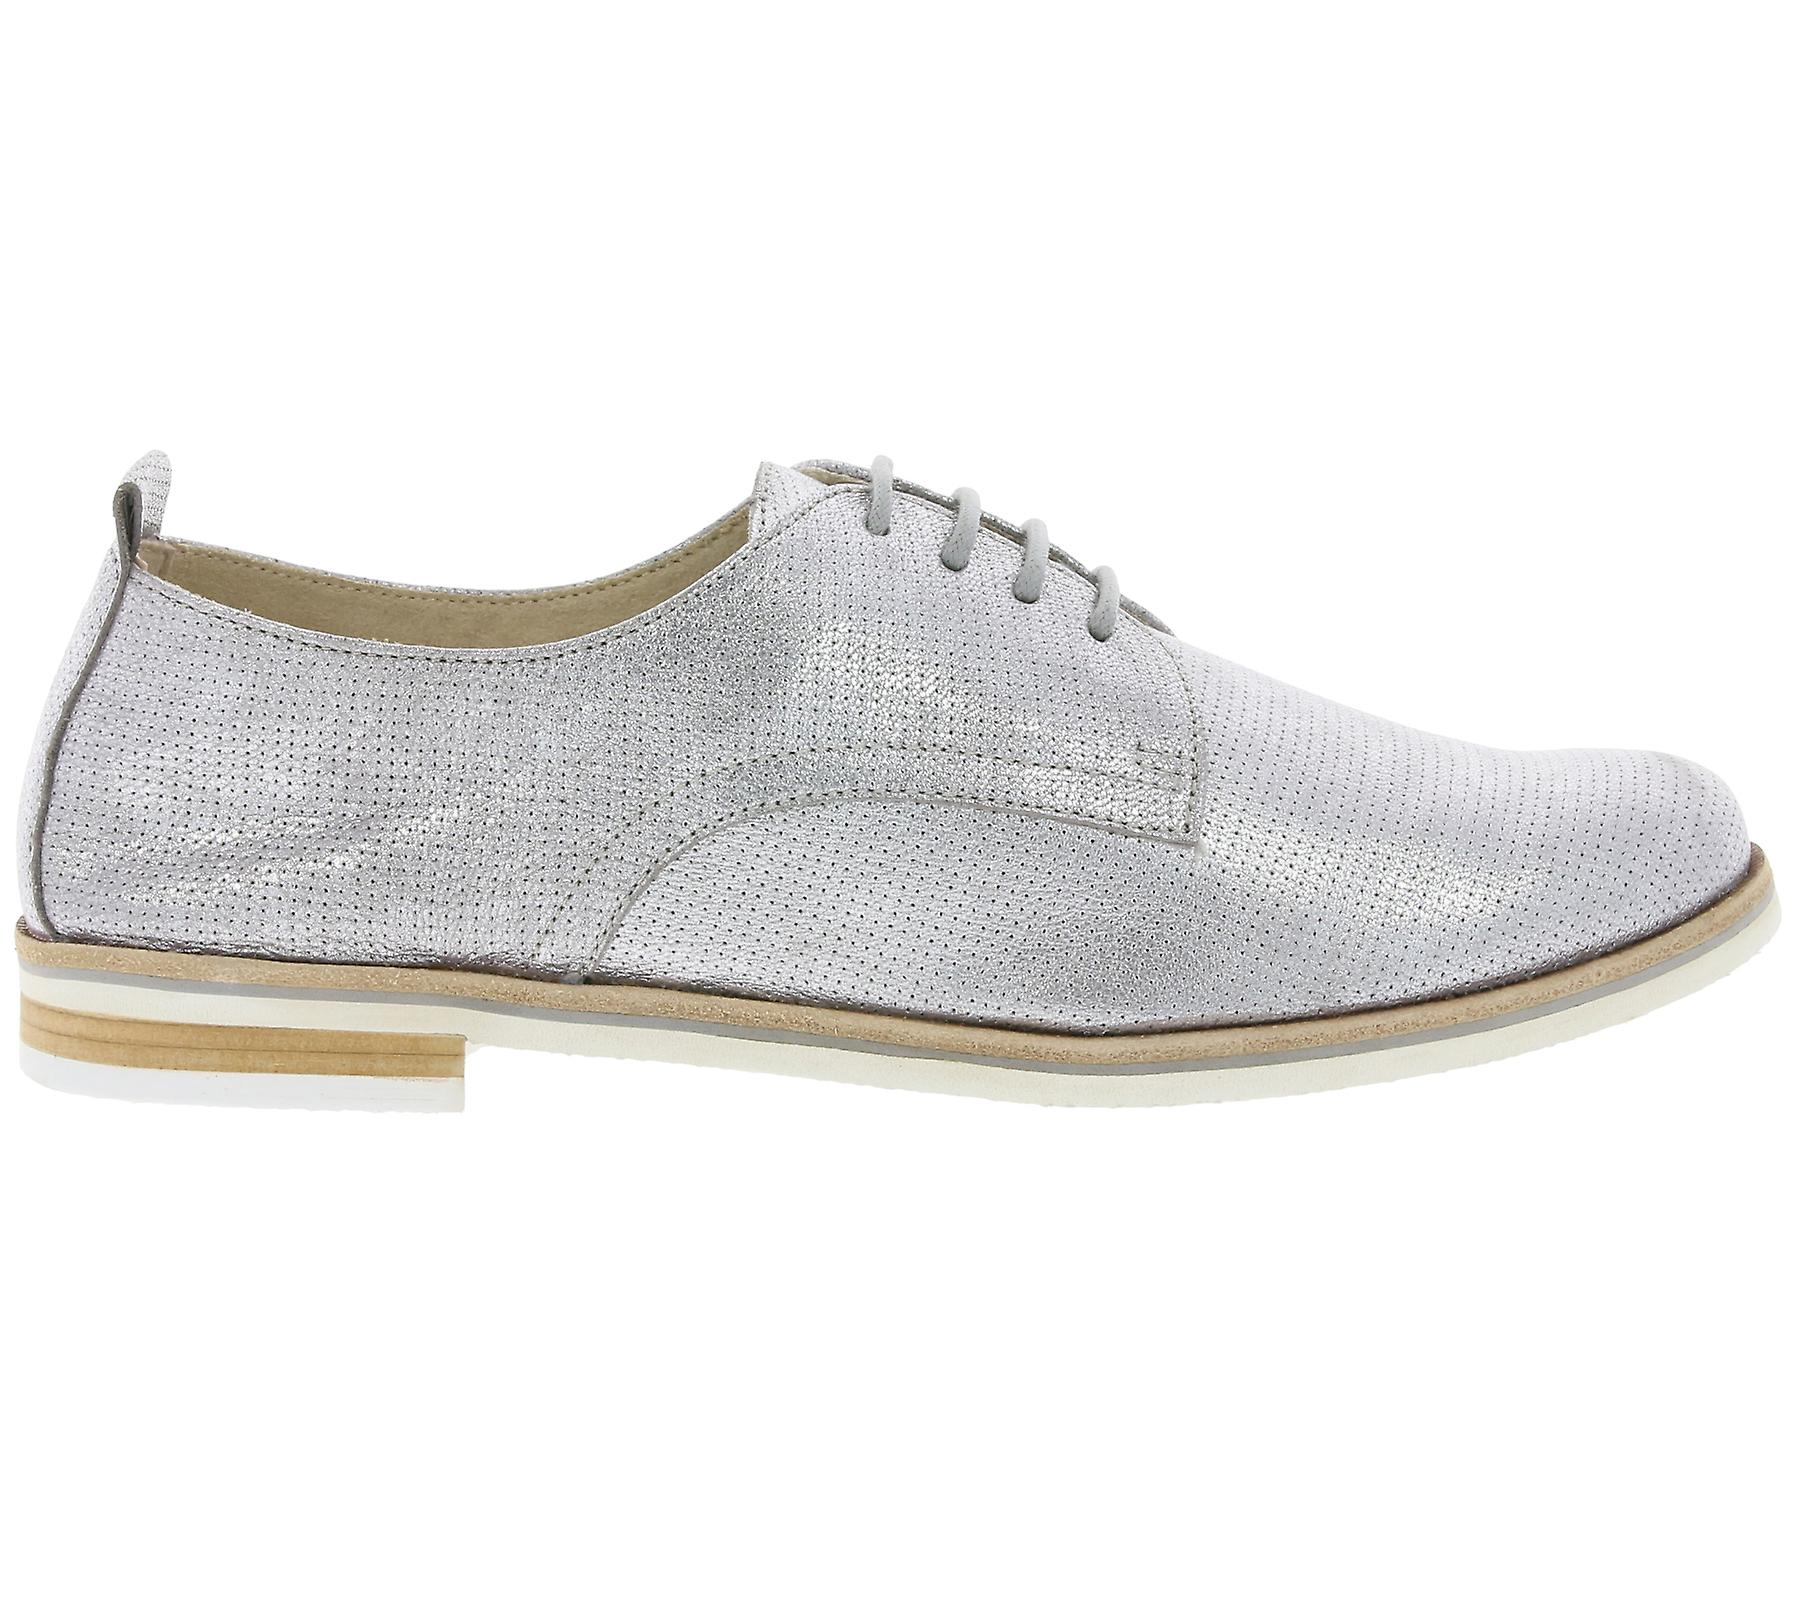 CAPRICE Alba ladies real leather flat shoes silver metal